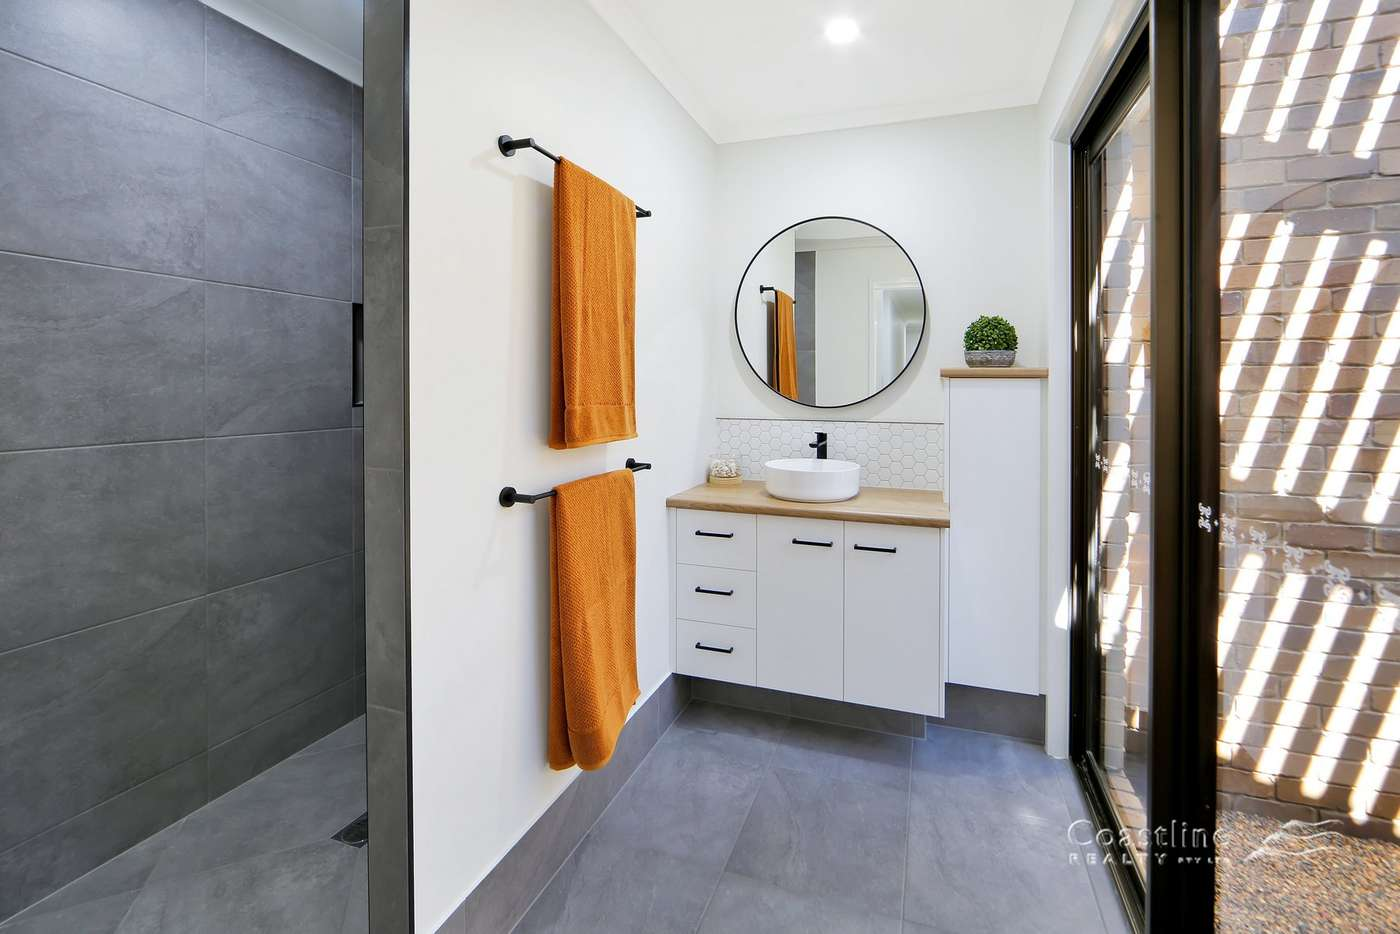 Sixth view of Homely house listing, 36 Sandhills Drive, Bargara QLD 4670